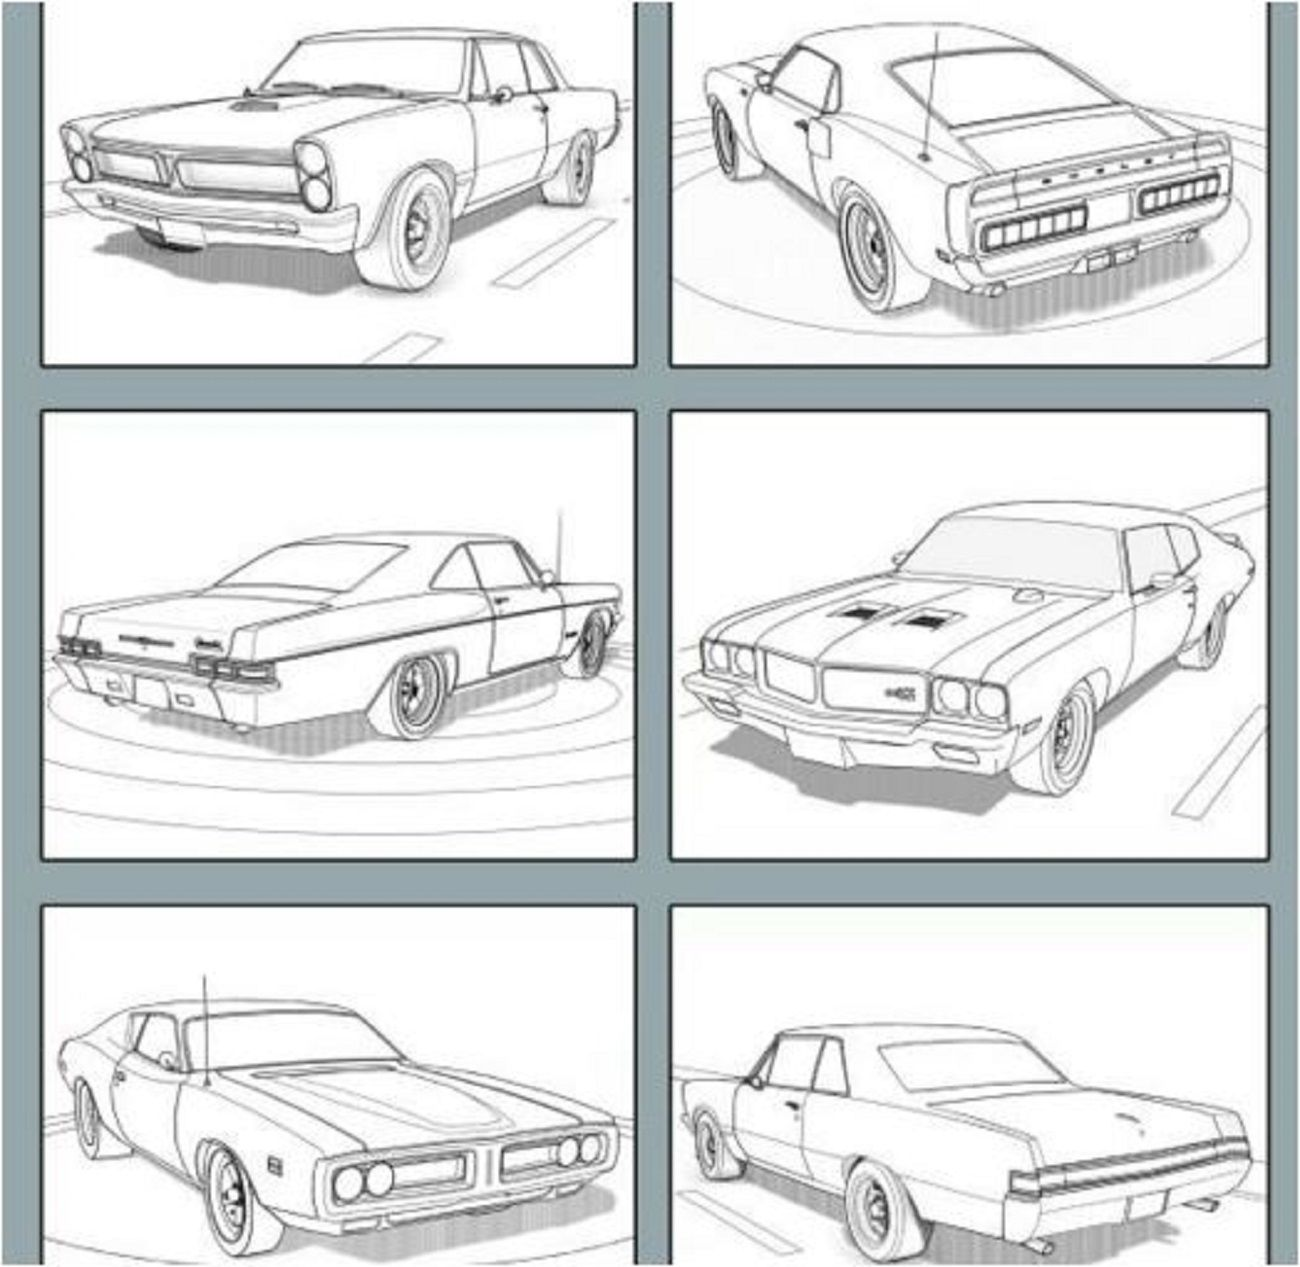 American Muscle Cars Coloring Book By Alexander Duval And Happy 2016 Paperback